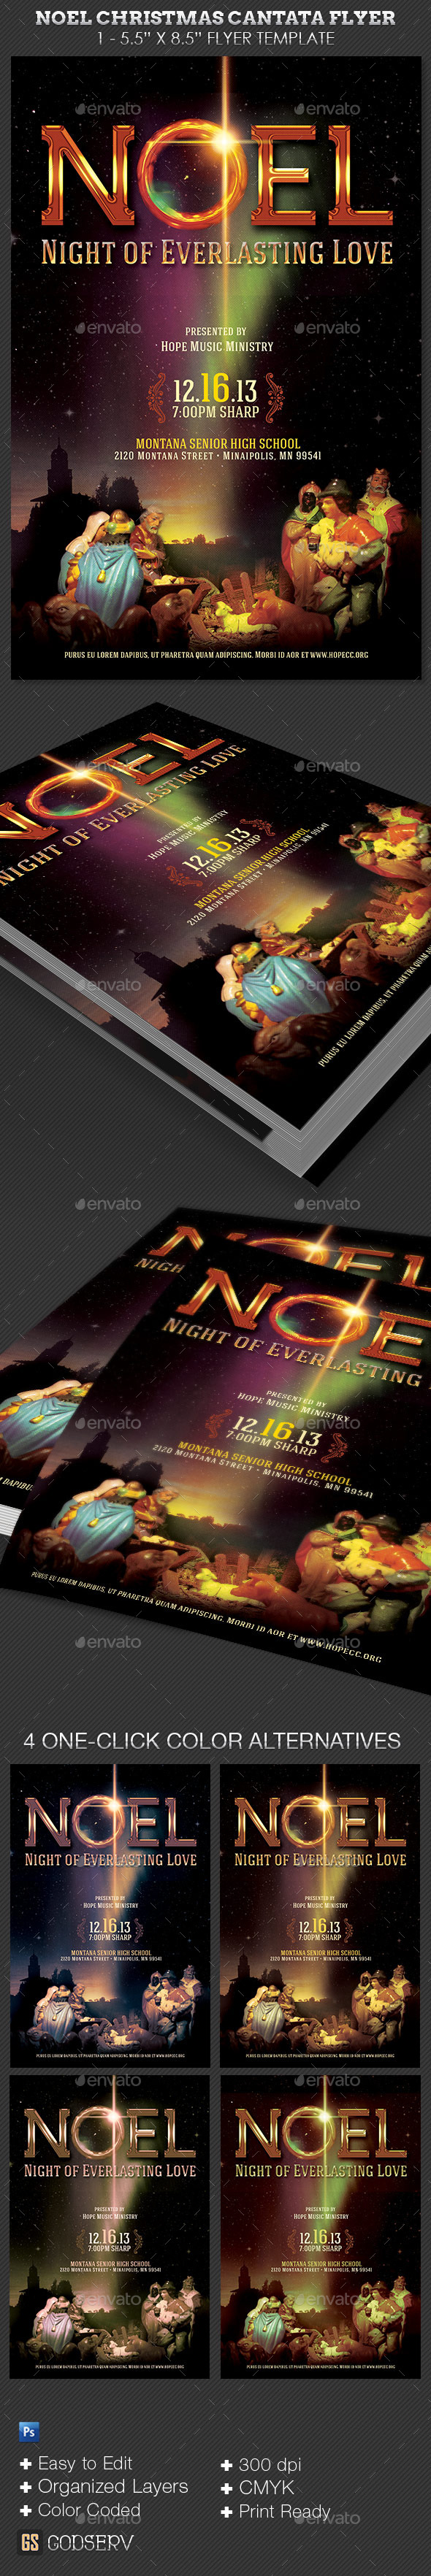 Noel Christmas Cantata Flyer Template